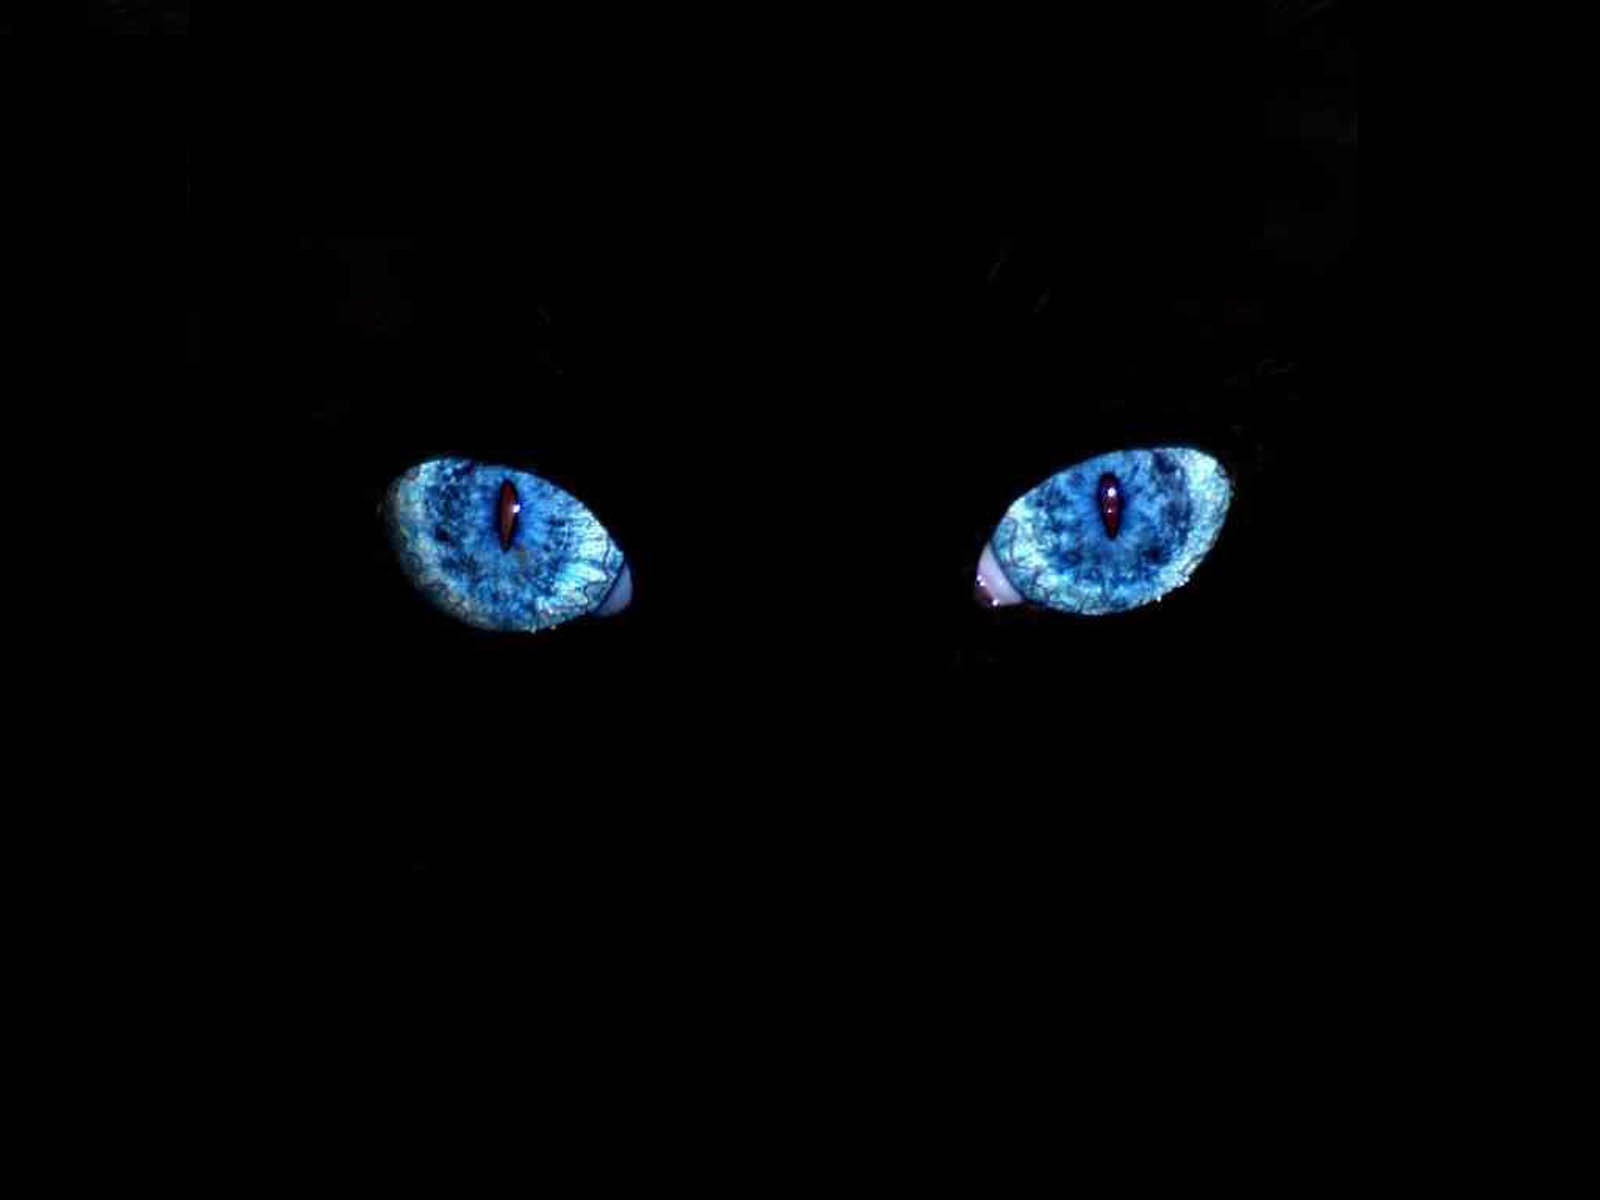 Tag Black Cat Blue Eyes Wallpapers Images Paos and Pictures for 1600x1200